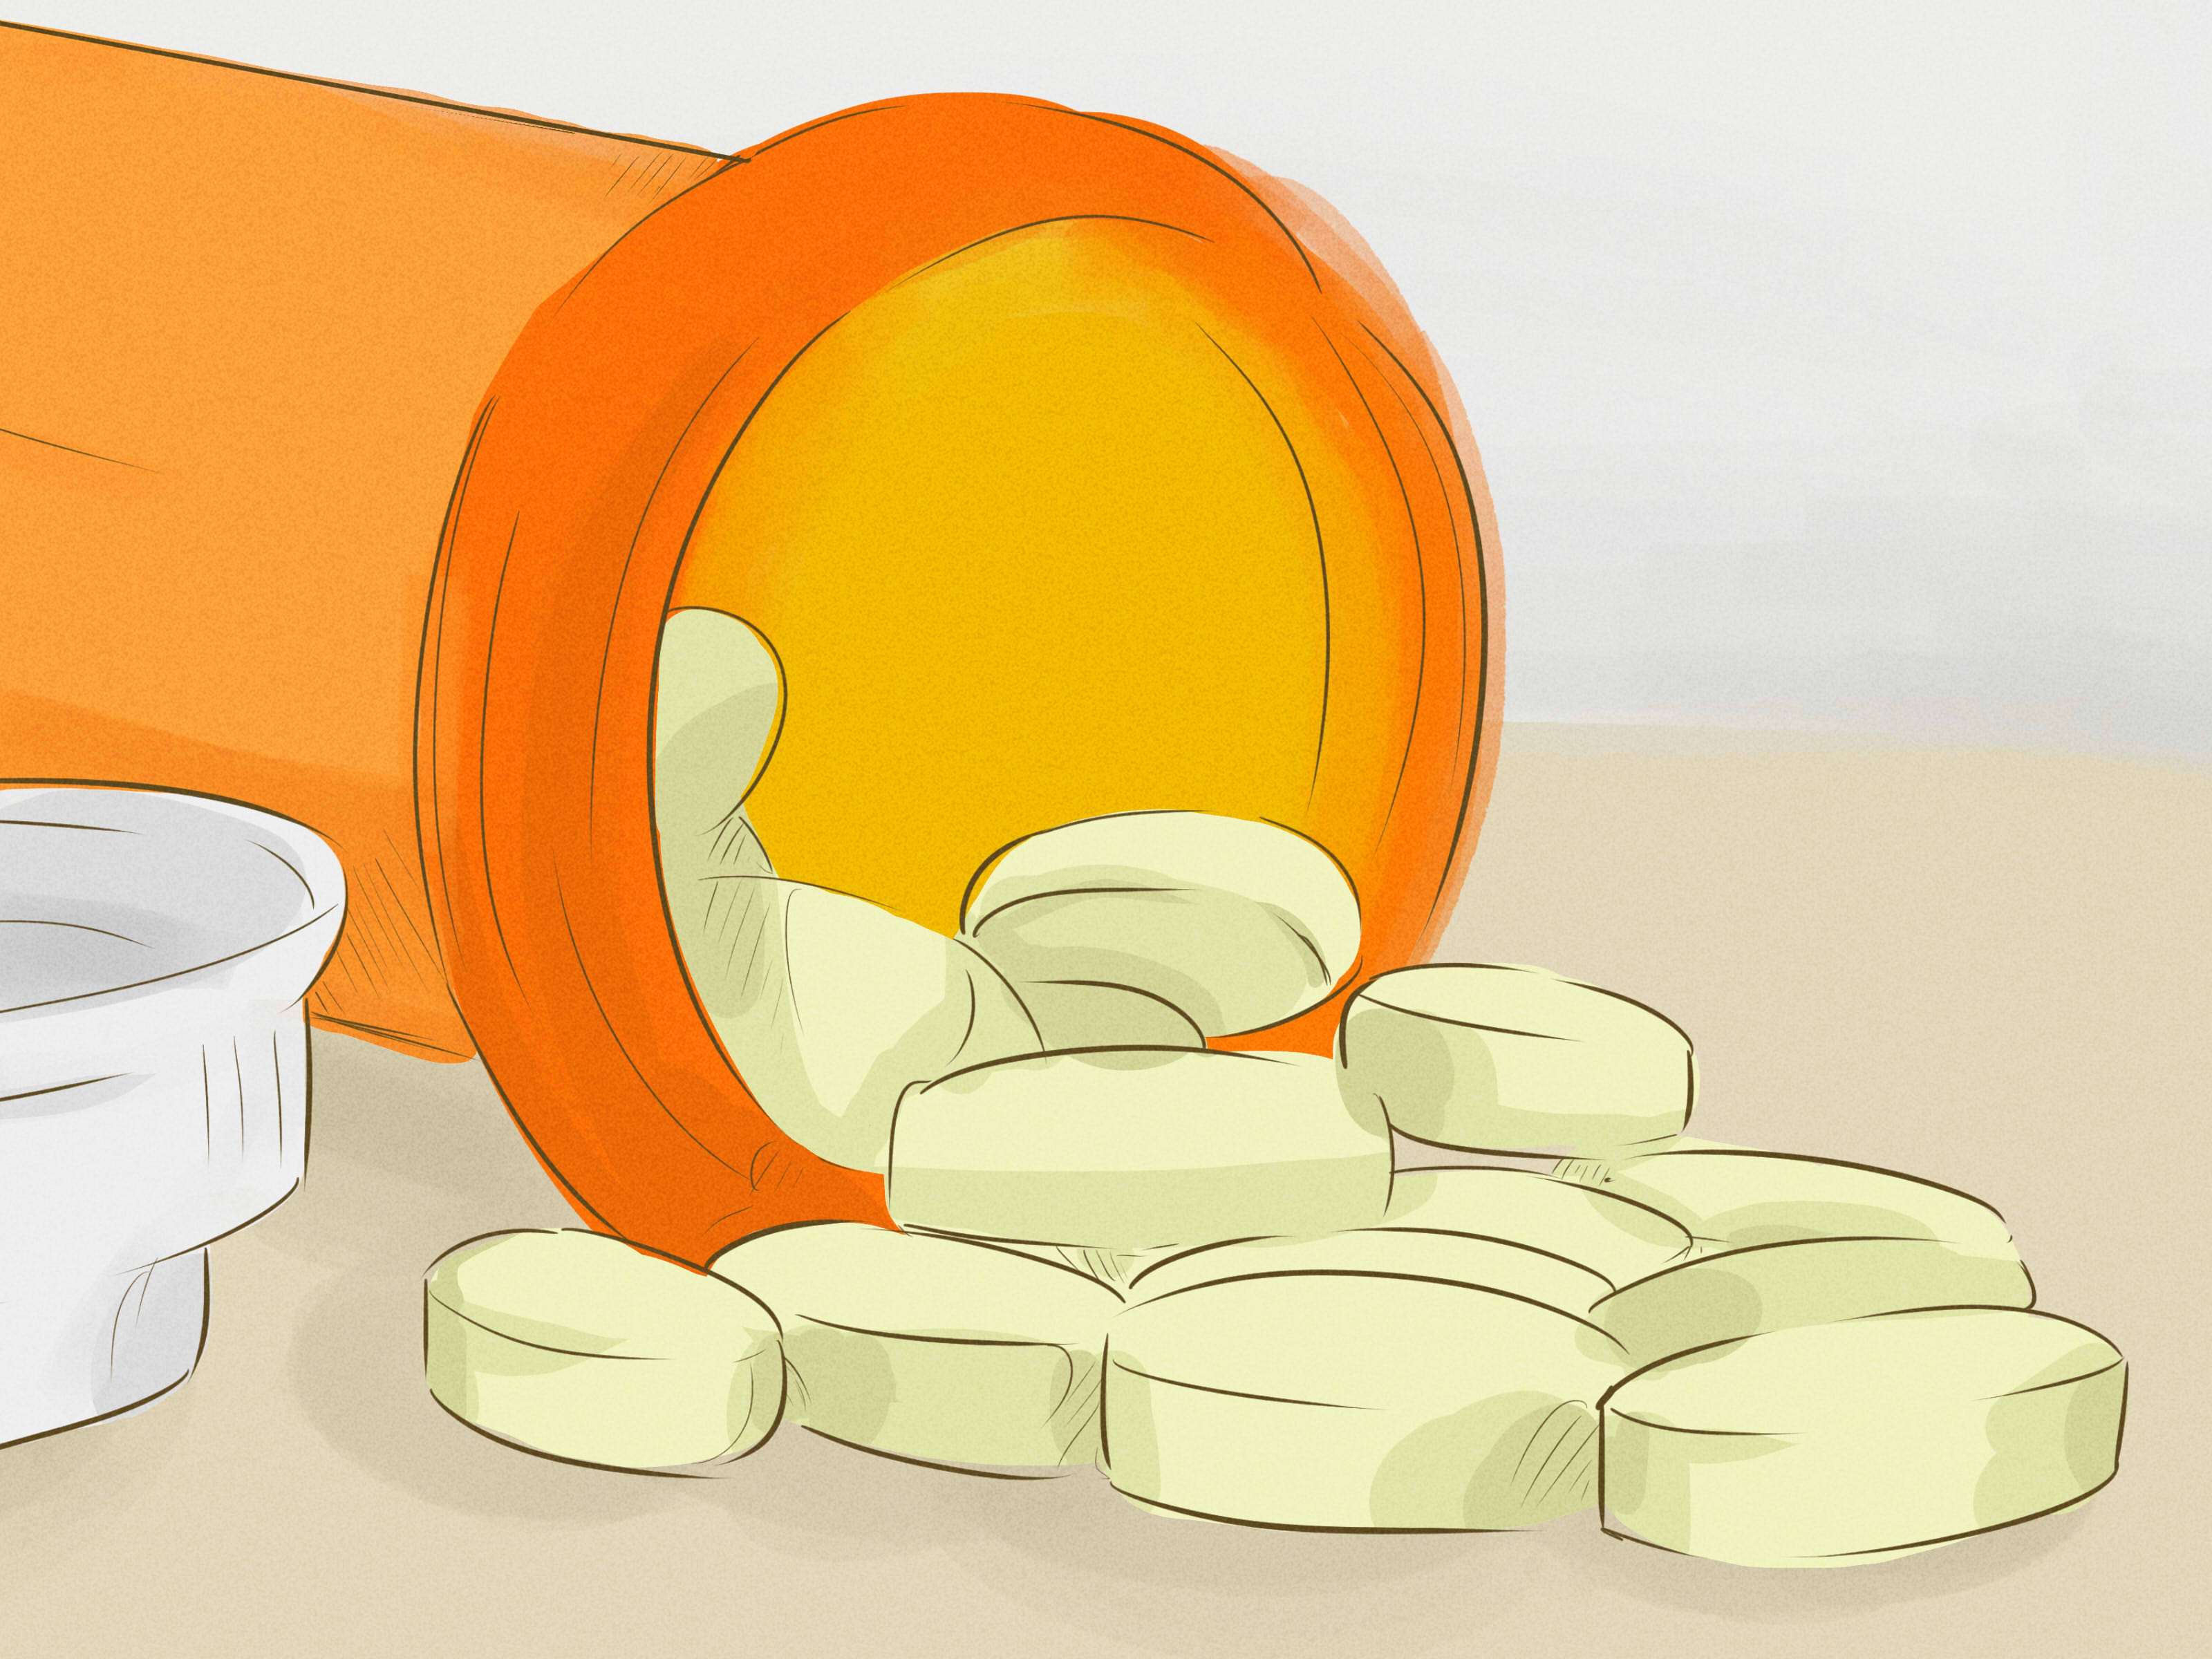 Medicine clipart cure To  3 Gastritis wikiHow